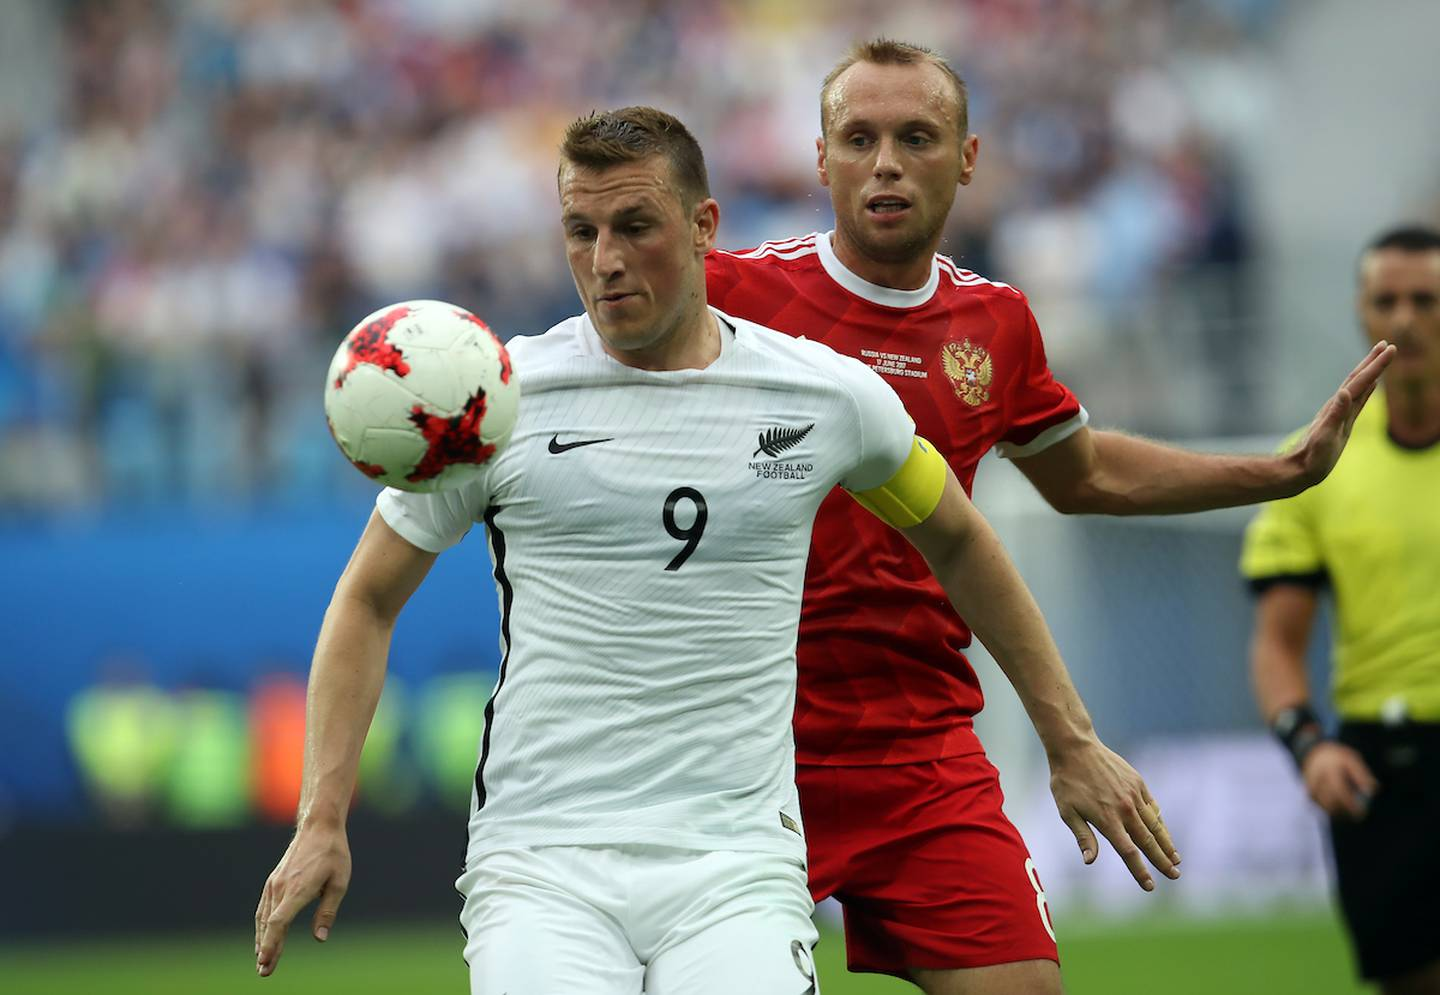 All Whites Chris Wood up against Russia's Denis Glushakov. FIFA Confederations Cup Russia 2017, Russia v New Zealand, Saint Petersburg Stadium Russia, Saturday 17th June 2017. Copyright photo: Shane Wenzlick / www.photosport.nz